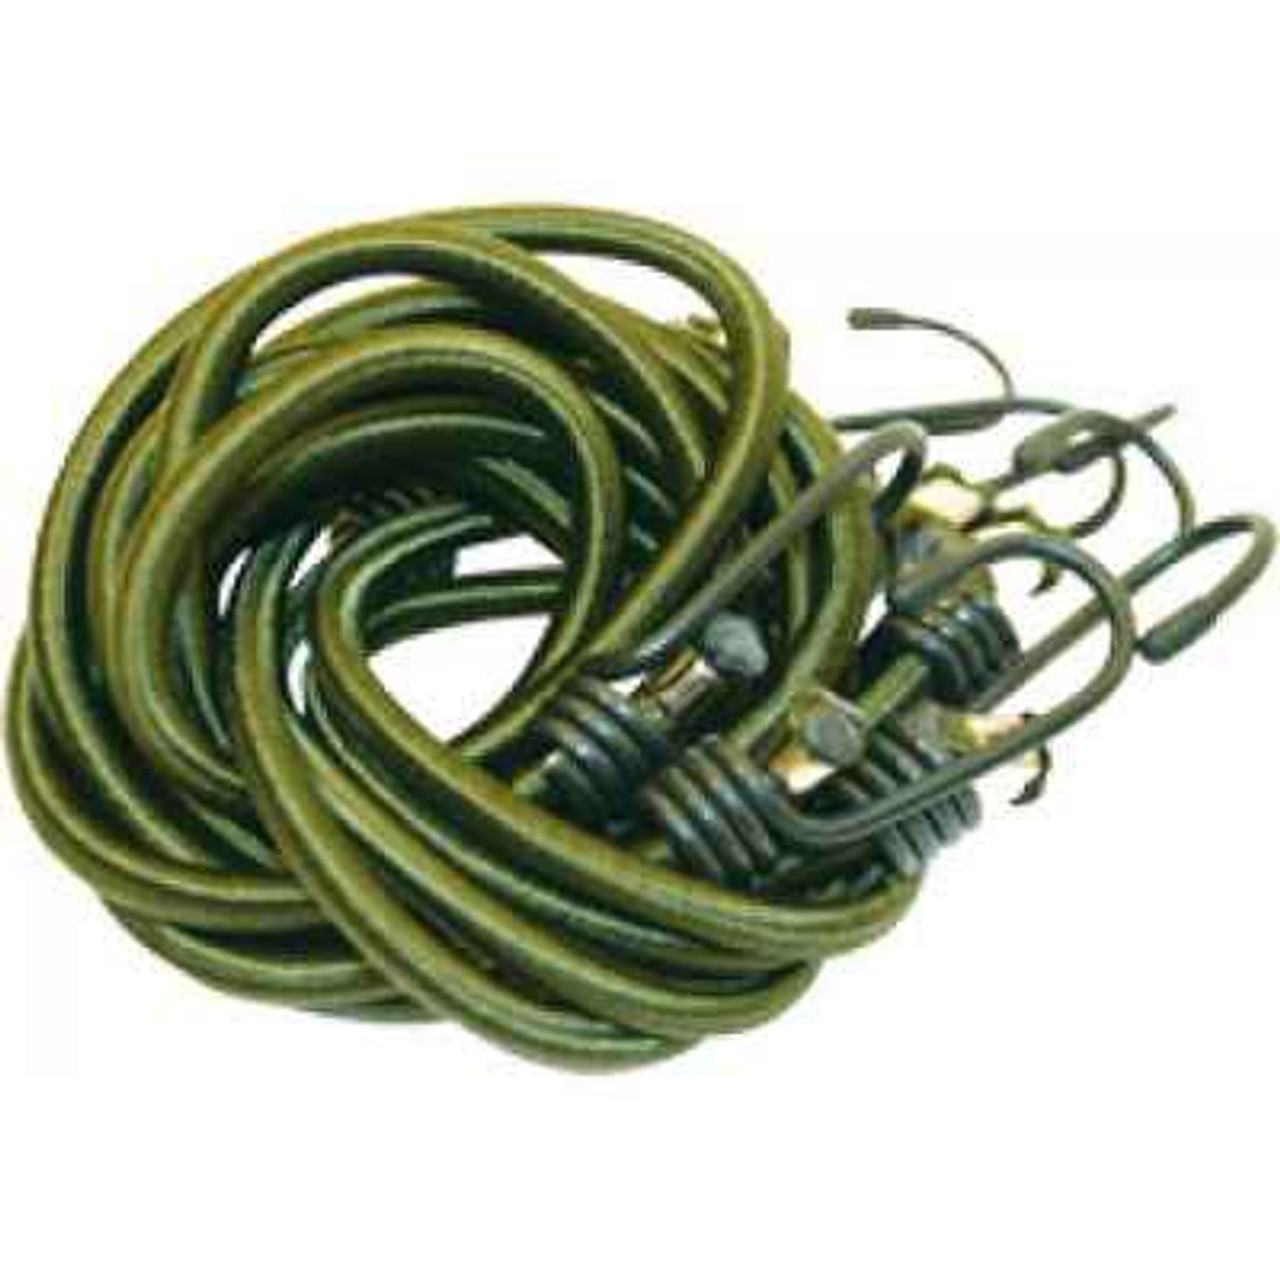 Bushcraft Elasticated Bungees